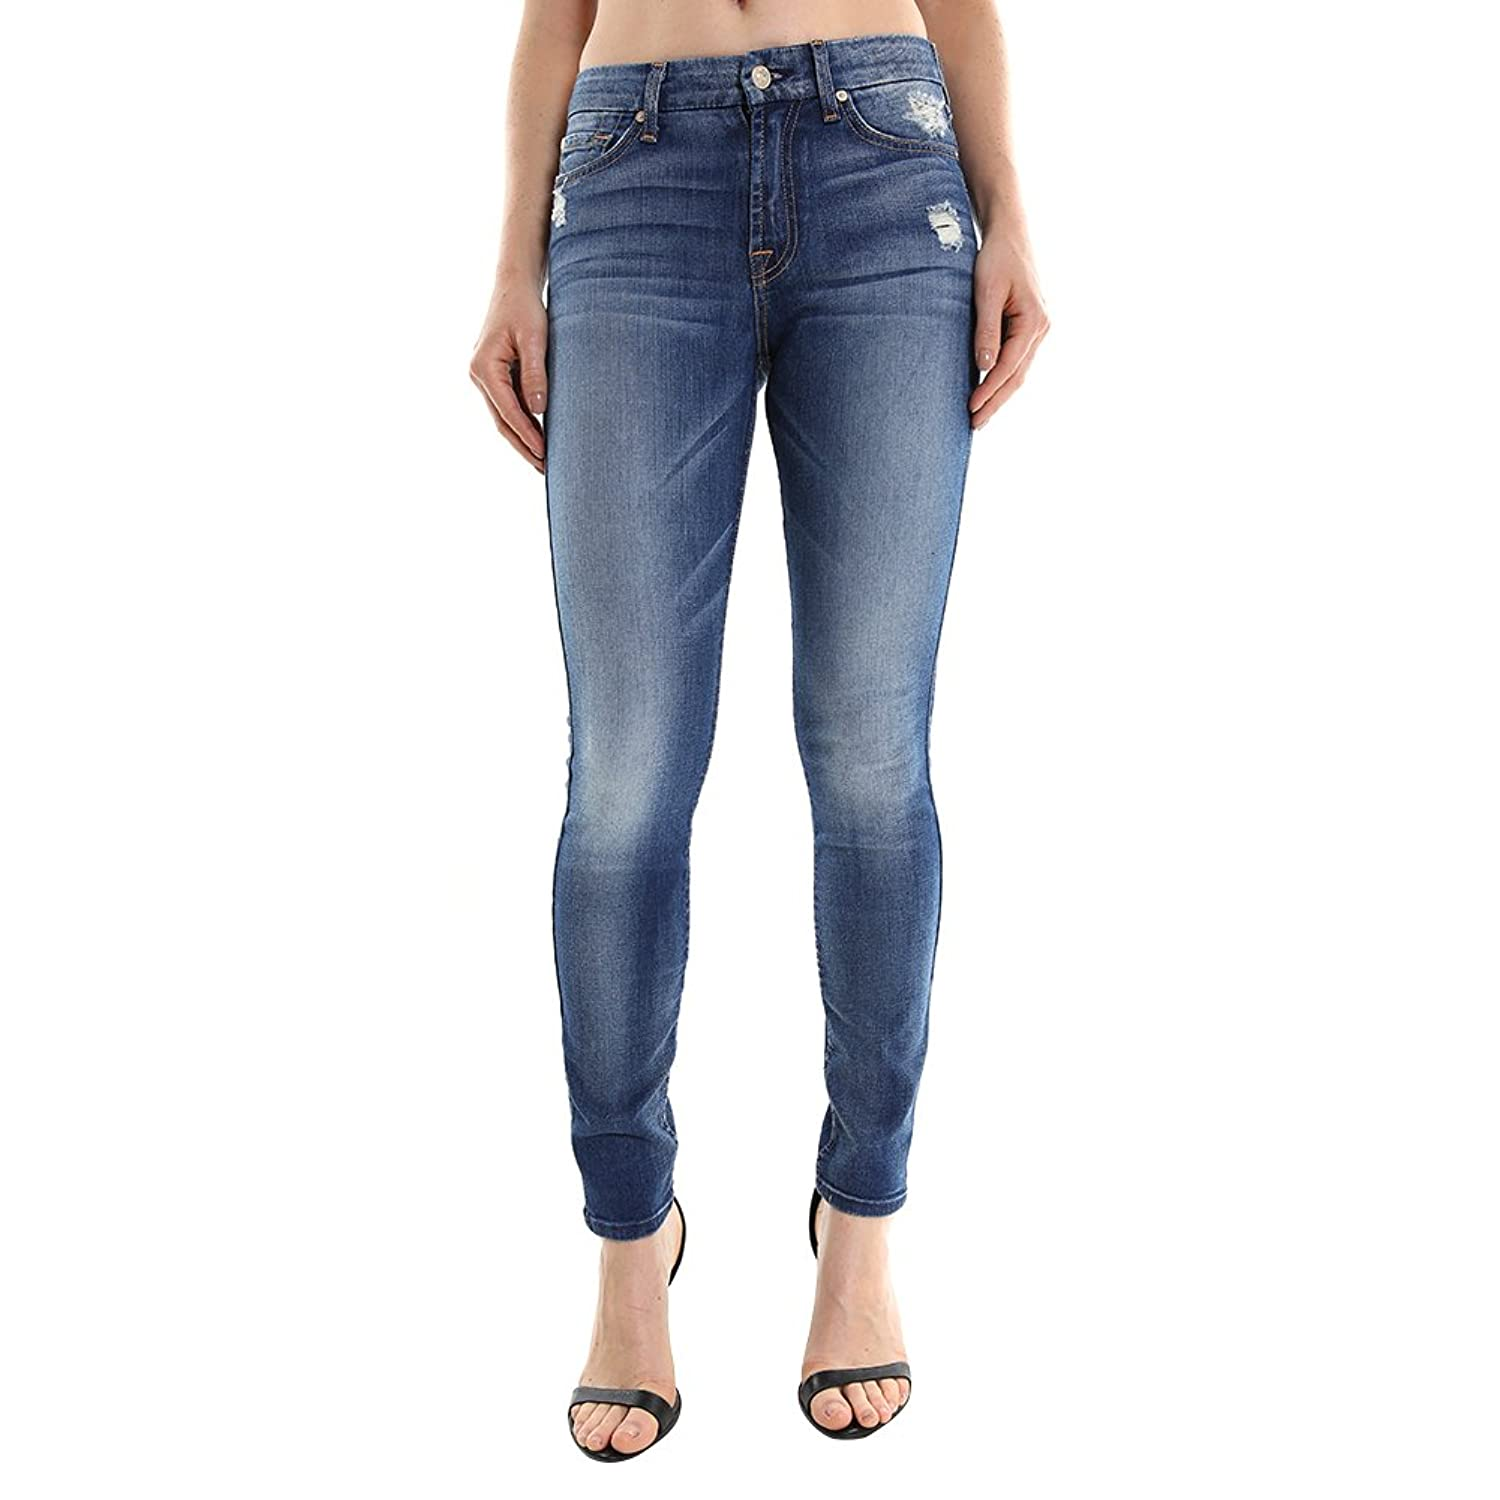 7 For All Mankind Women's High Waist Skinny w/ Squiggle Jean AU035344A SZ 24